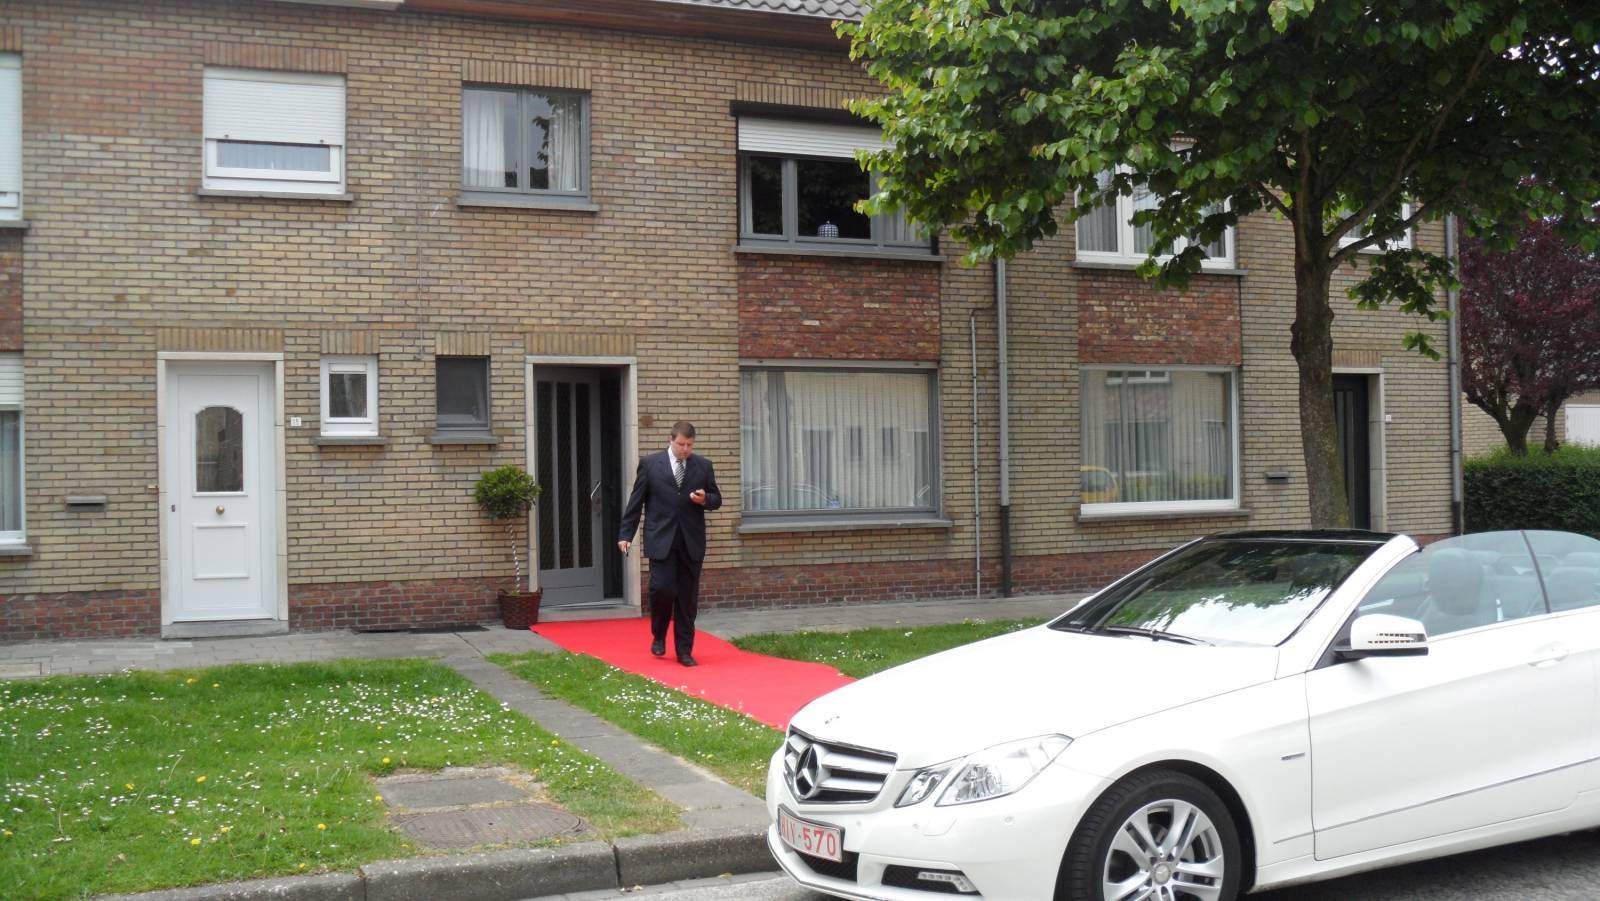 House of Weddings Ceremonie Schoonbaert Trouwvervoer Rode Loper Ceremoniemeester West-Vlaanderen (3)